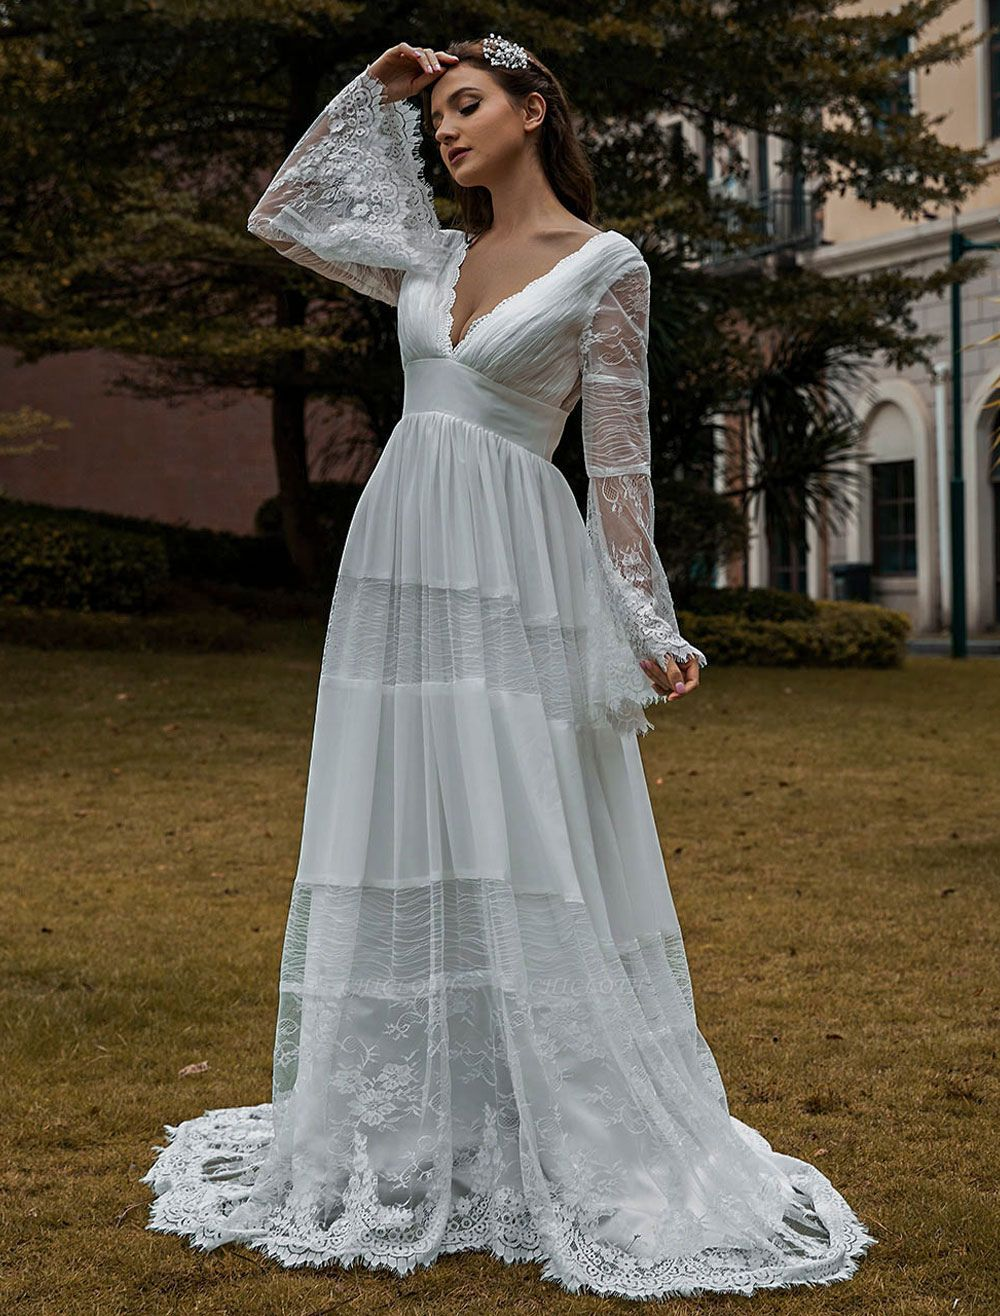 Wedding Gowns Boho Wedding Dress Long Sleeves Lace V-Neck Lace Chiffon Wedding Gowns Exclusive